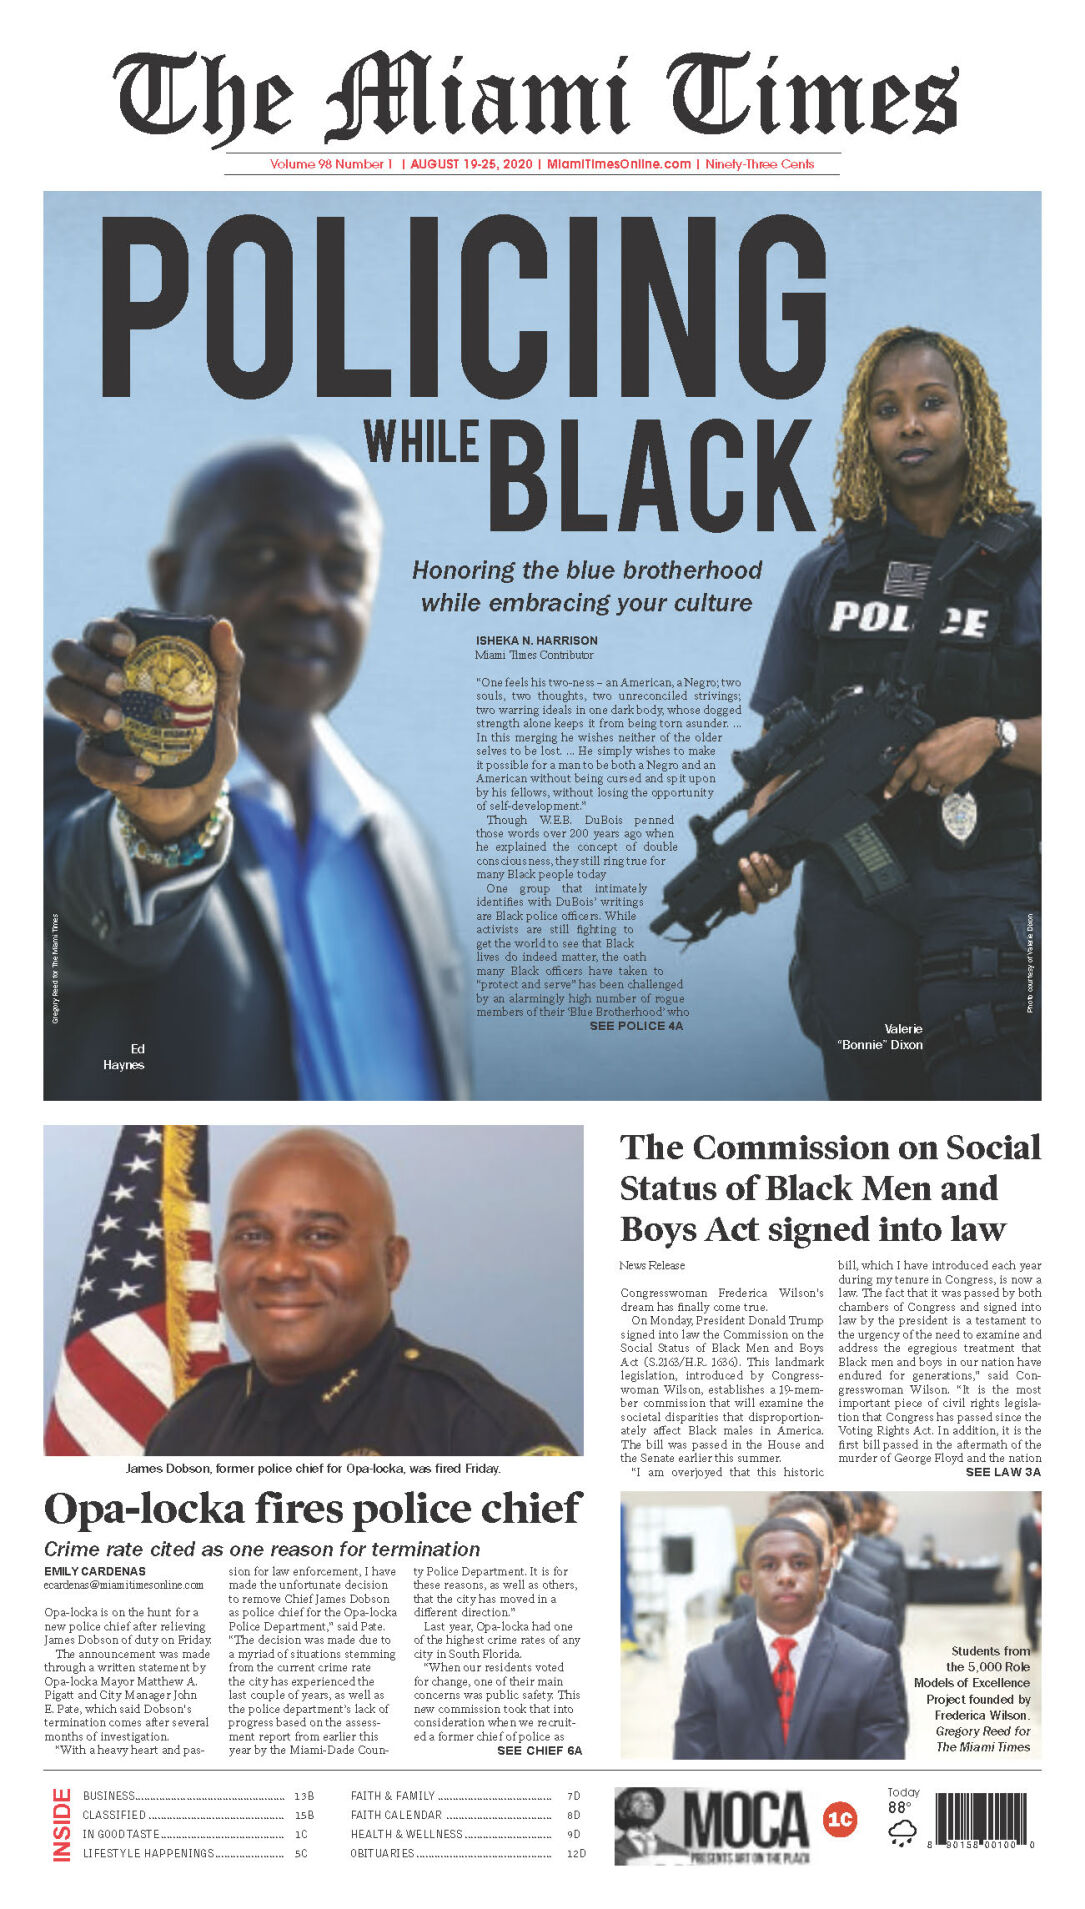 The Miami Times August 18-25, 2020